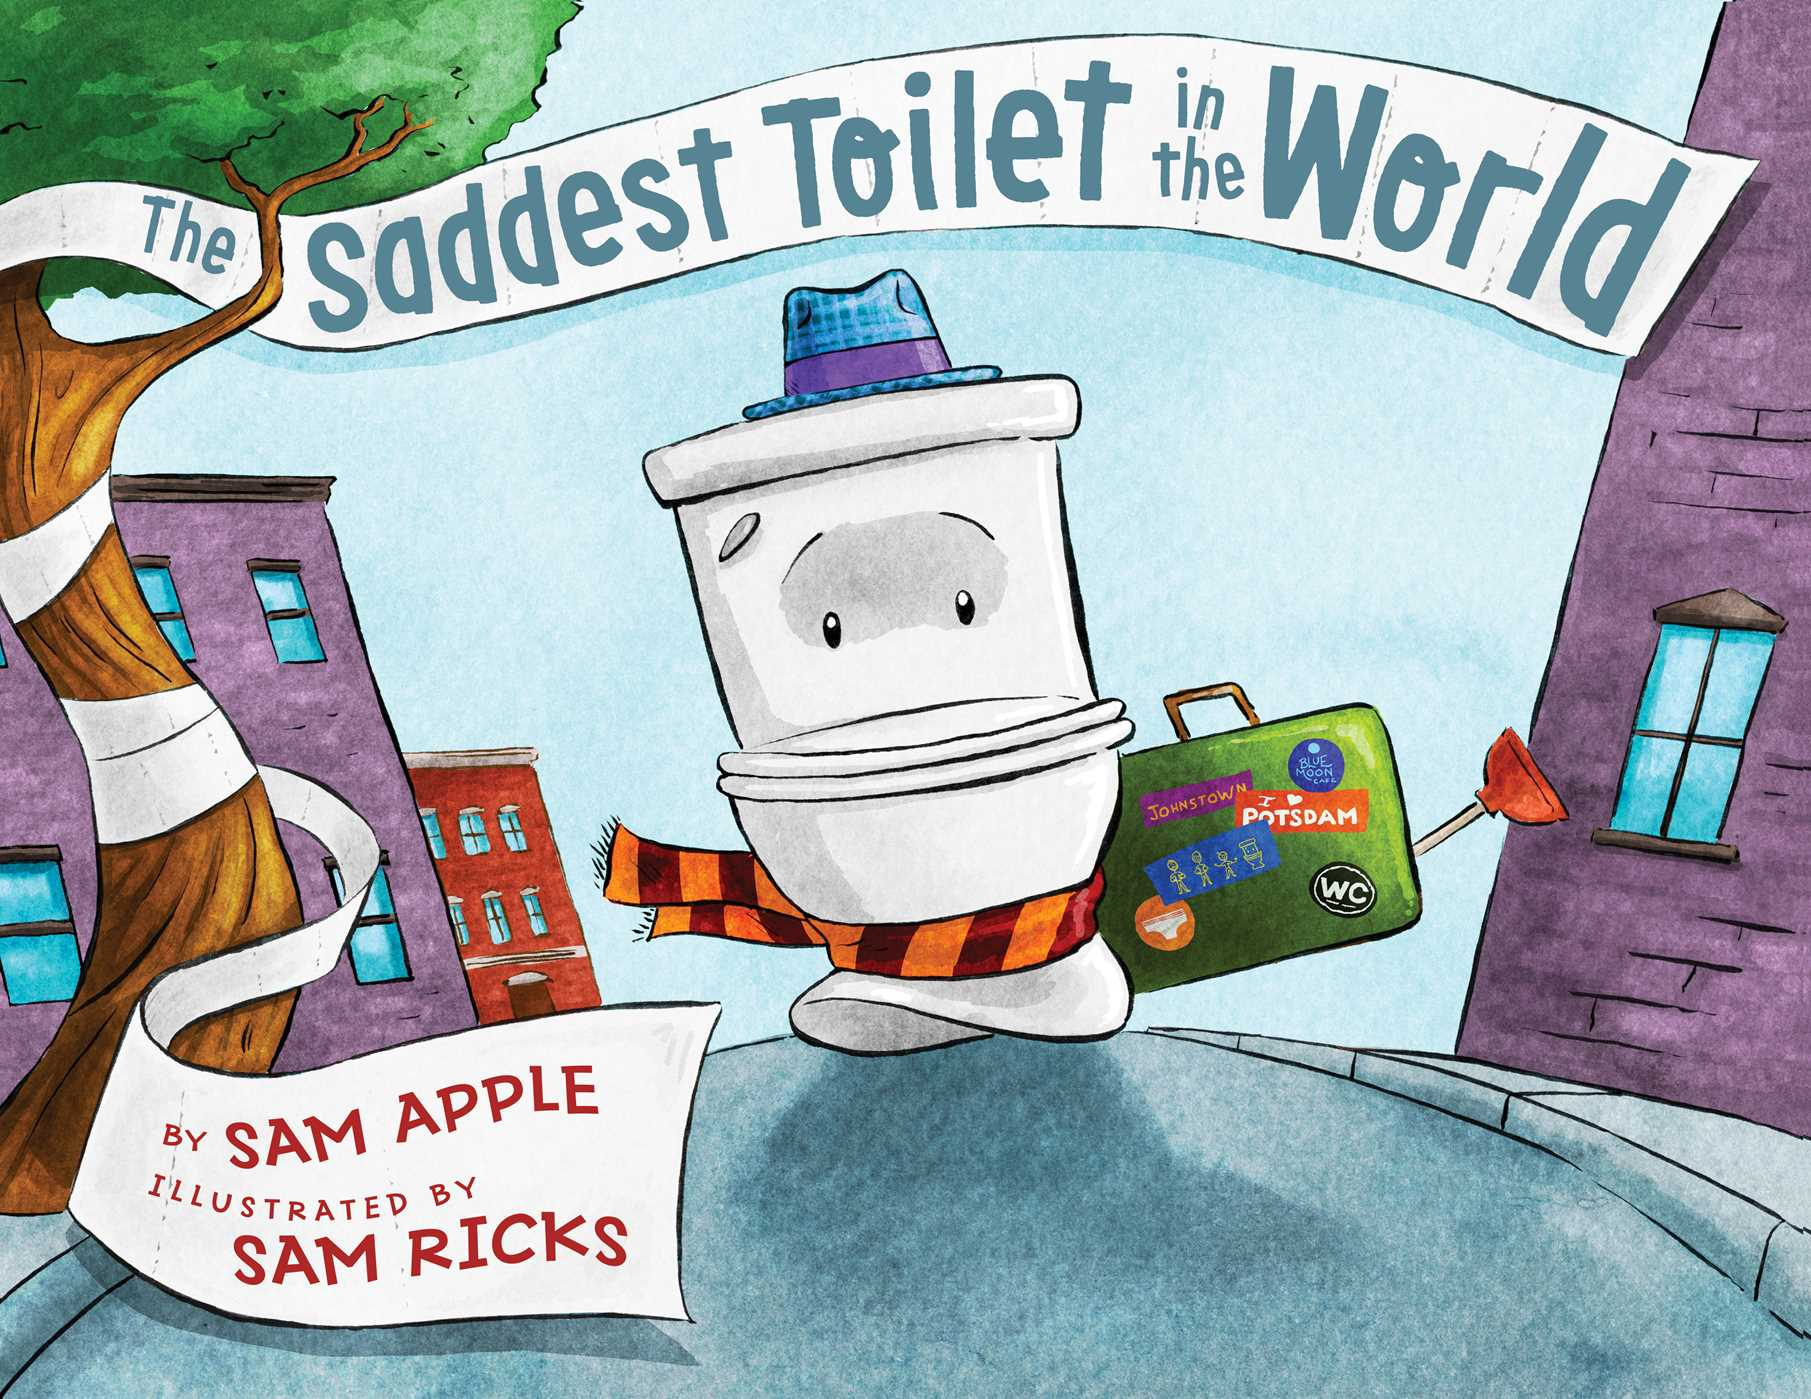 the-saddest-toilet-in-the-world-9781481451222_hr